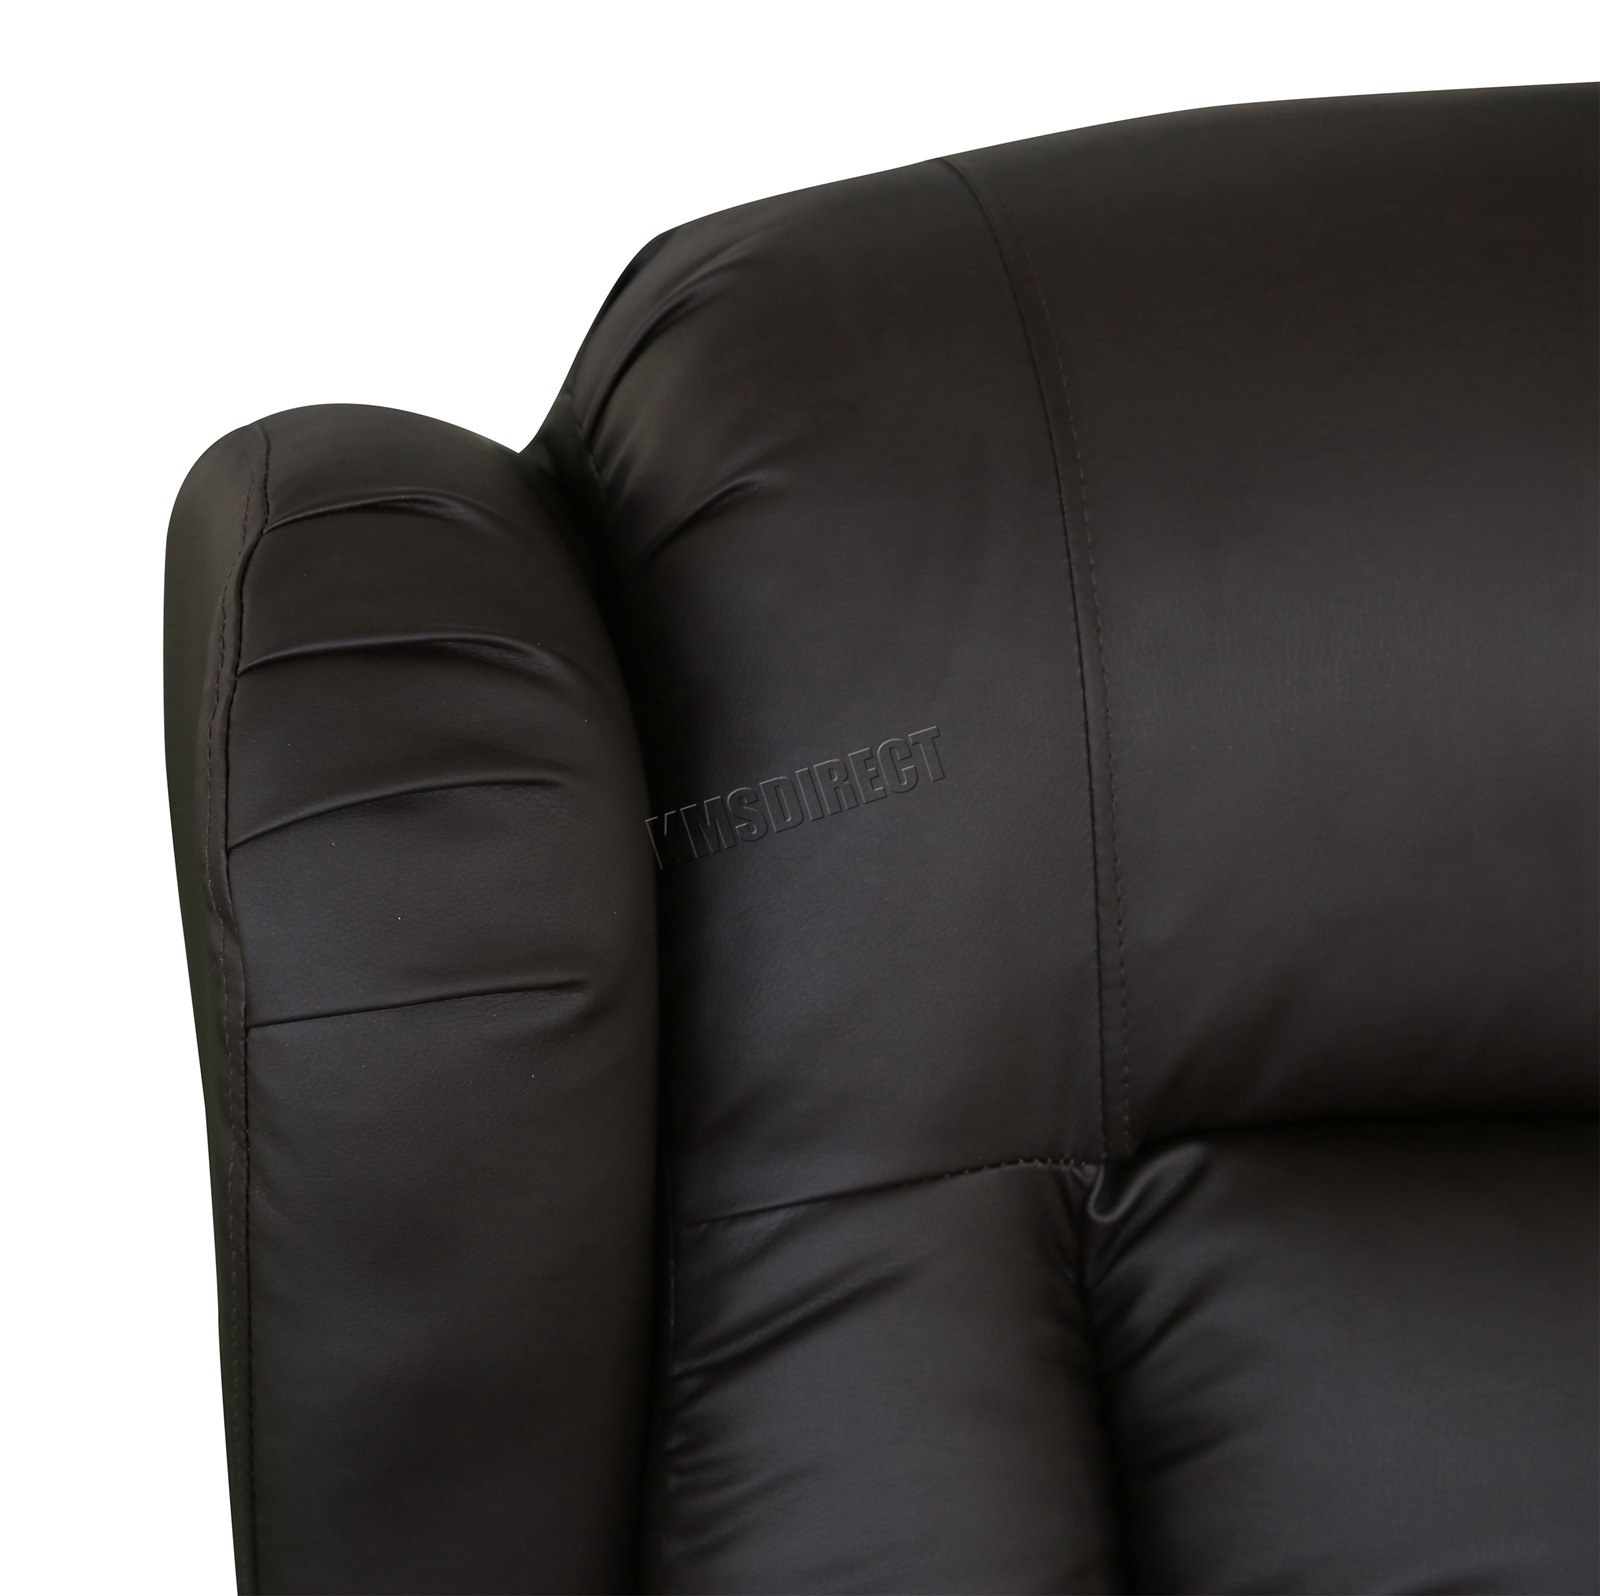 WESTWOOD-Leather-Recliner-Armchair-Swivel-Heated-chair-Massage-Gaming-Chair thumbnail 33